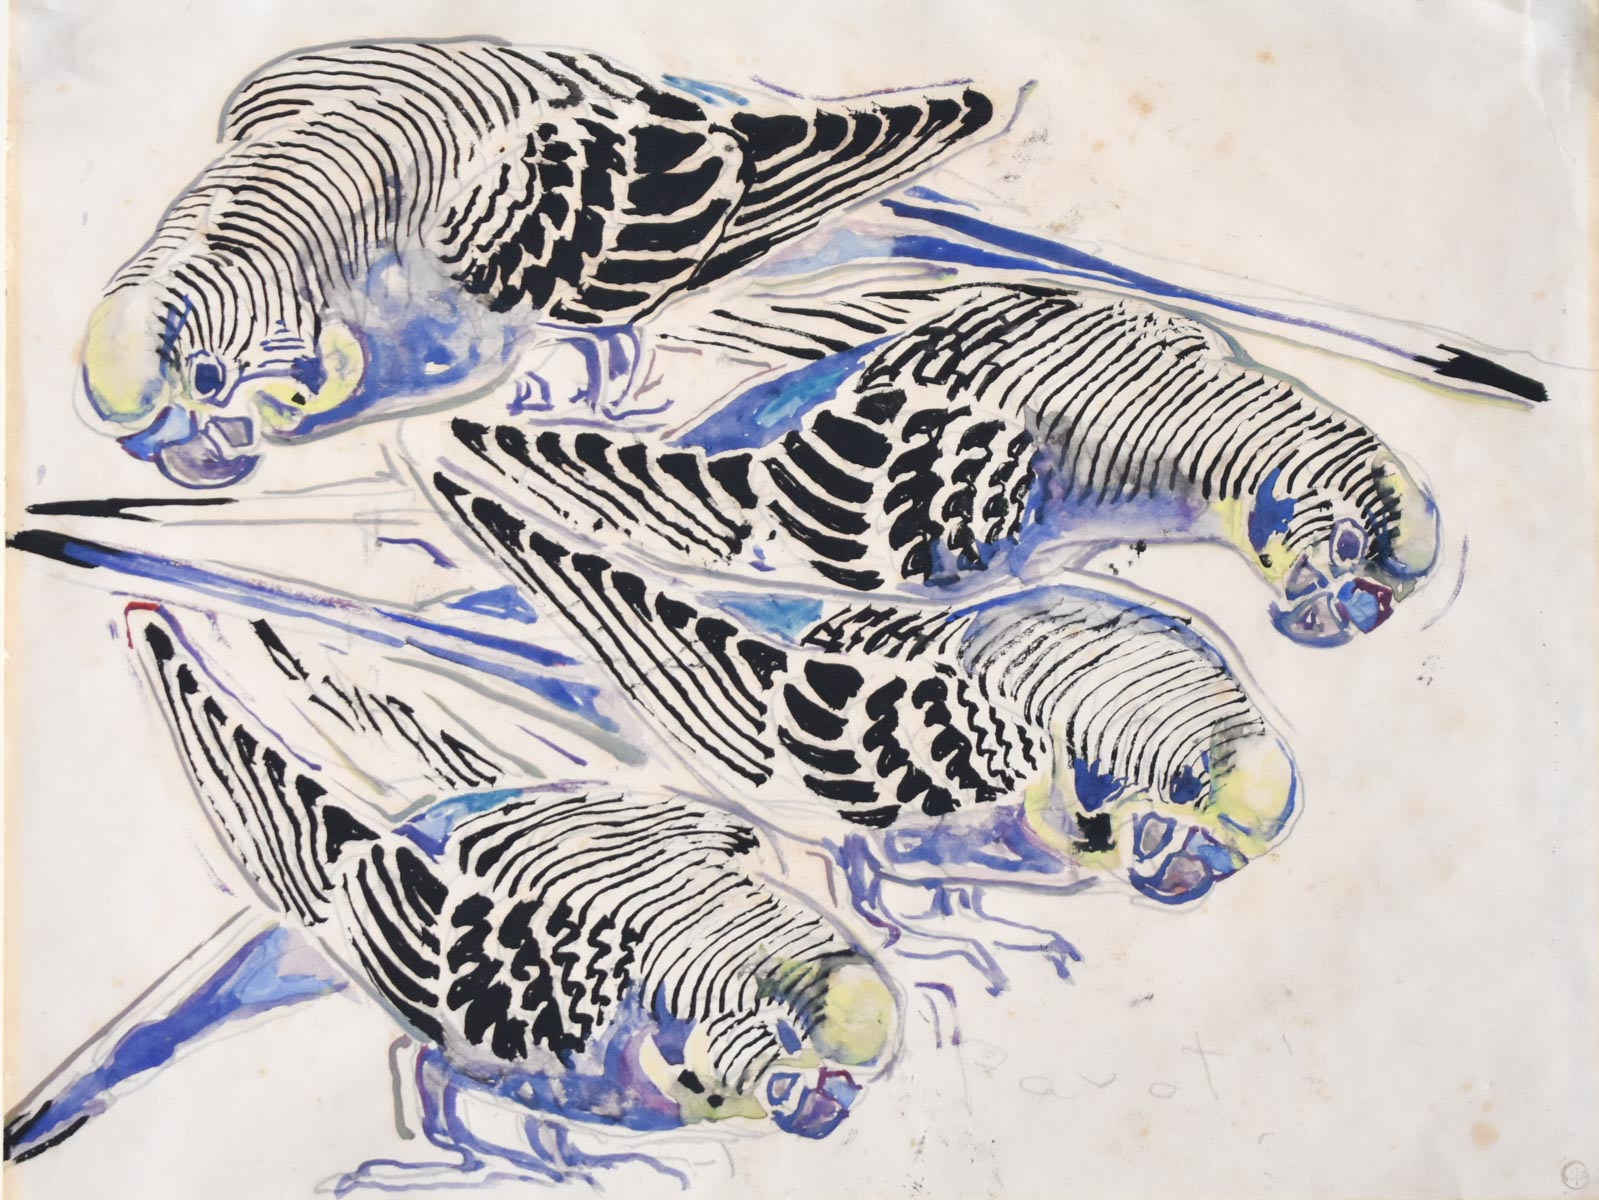 "Walter Inglis Anderson(American, 1903-1965)  Toby,   watercolor and pencil on paper, estate stamped lower right, inscribed ""Parot"" [sic] lower right, inscribed en verso ""Mike's Parakeet Toby,"" 8 1/4 x 11 in."